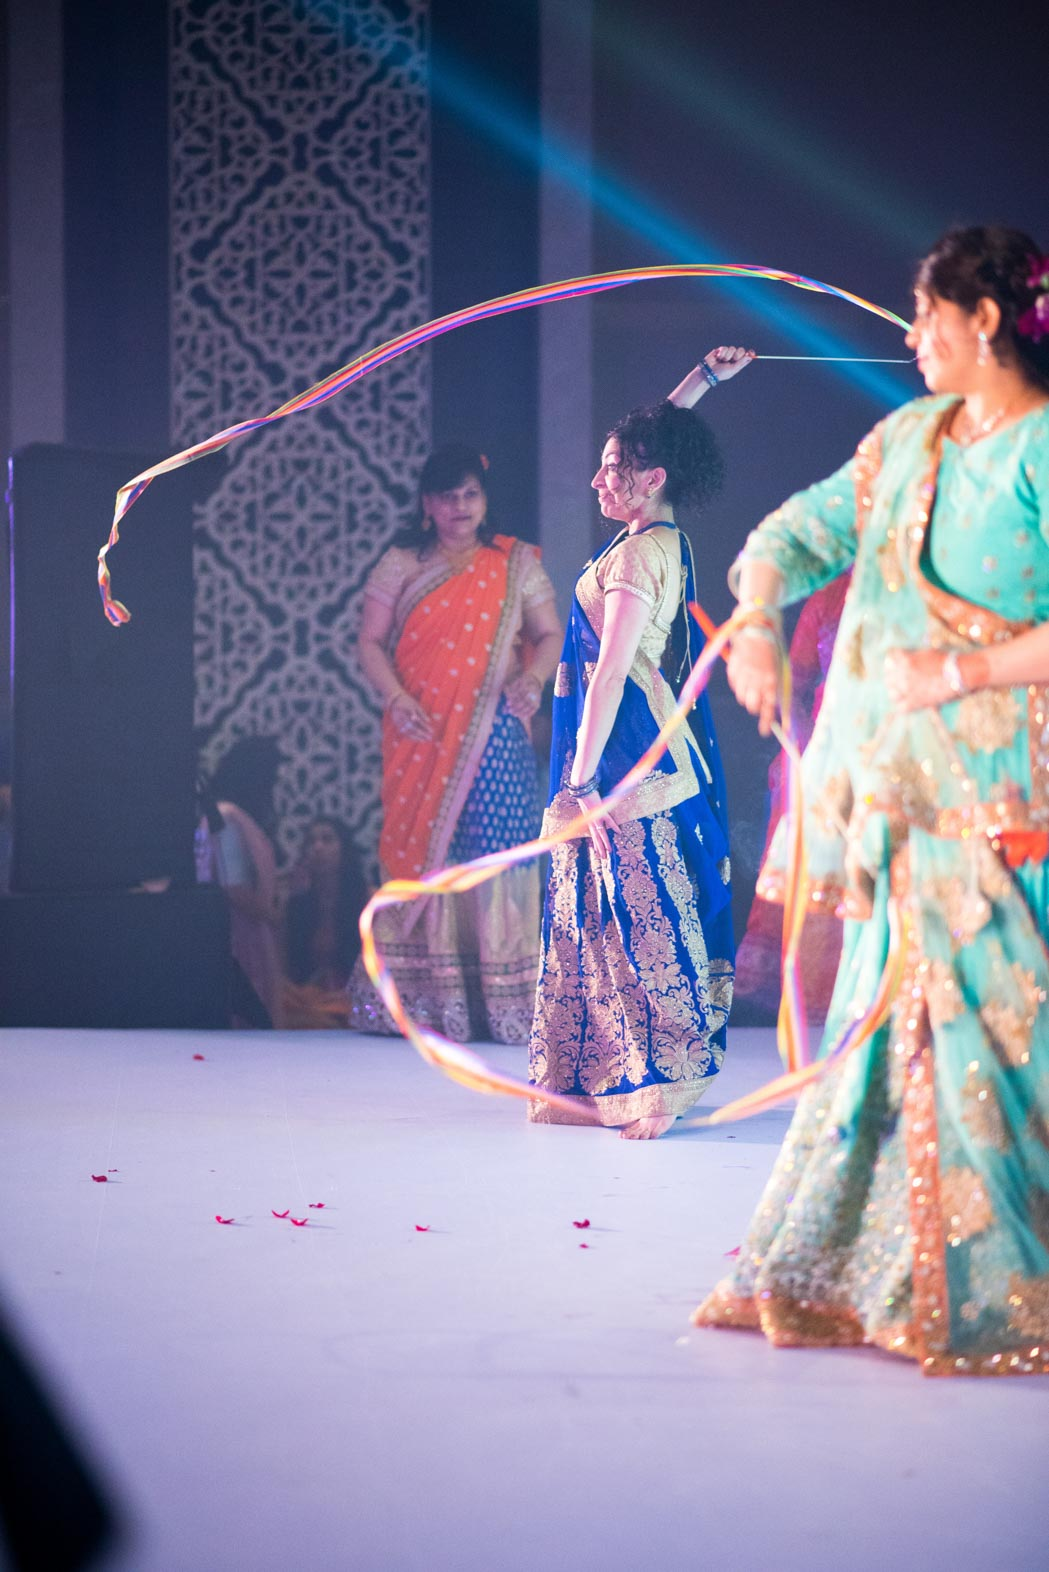 StRegis-Palladium-Mumbai-Candid-Wedding-Photography-67